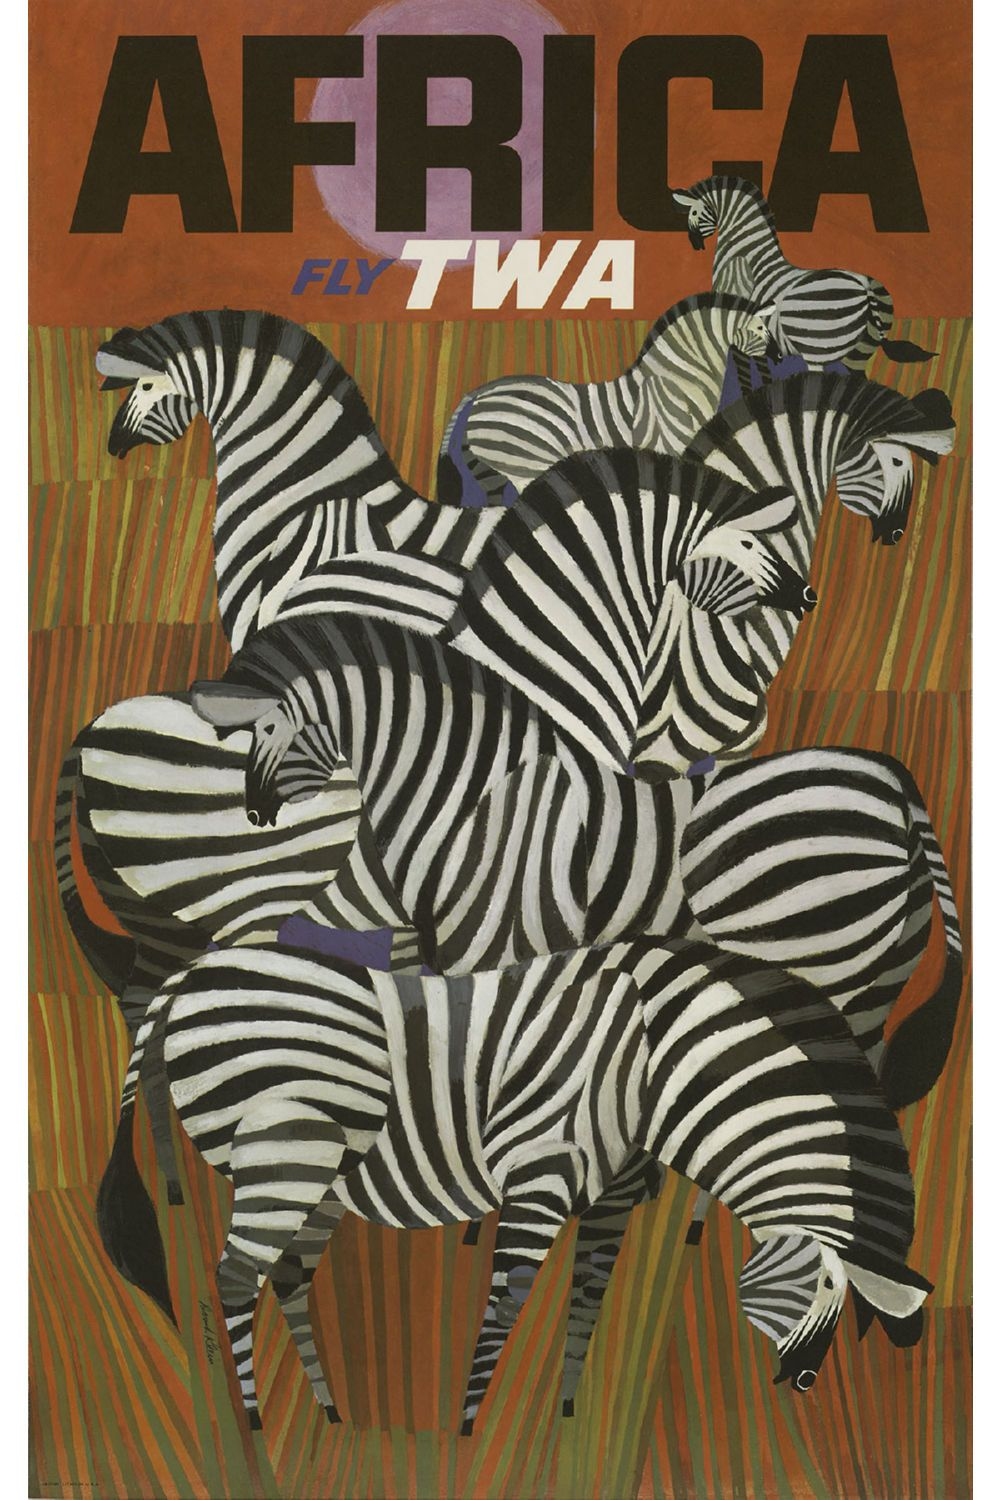 Africa Zebras Fly TWA Poster Canvas